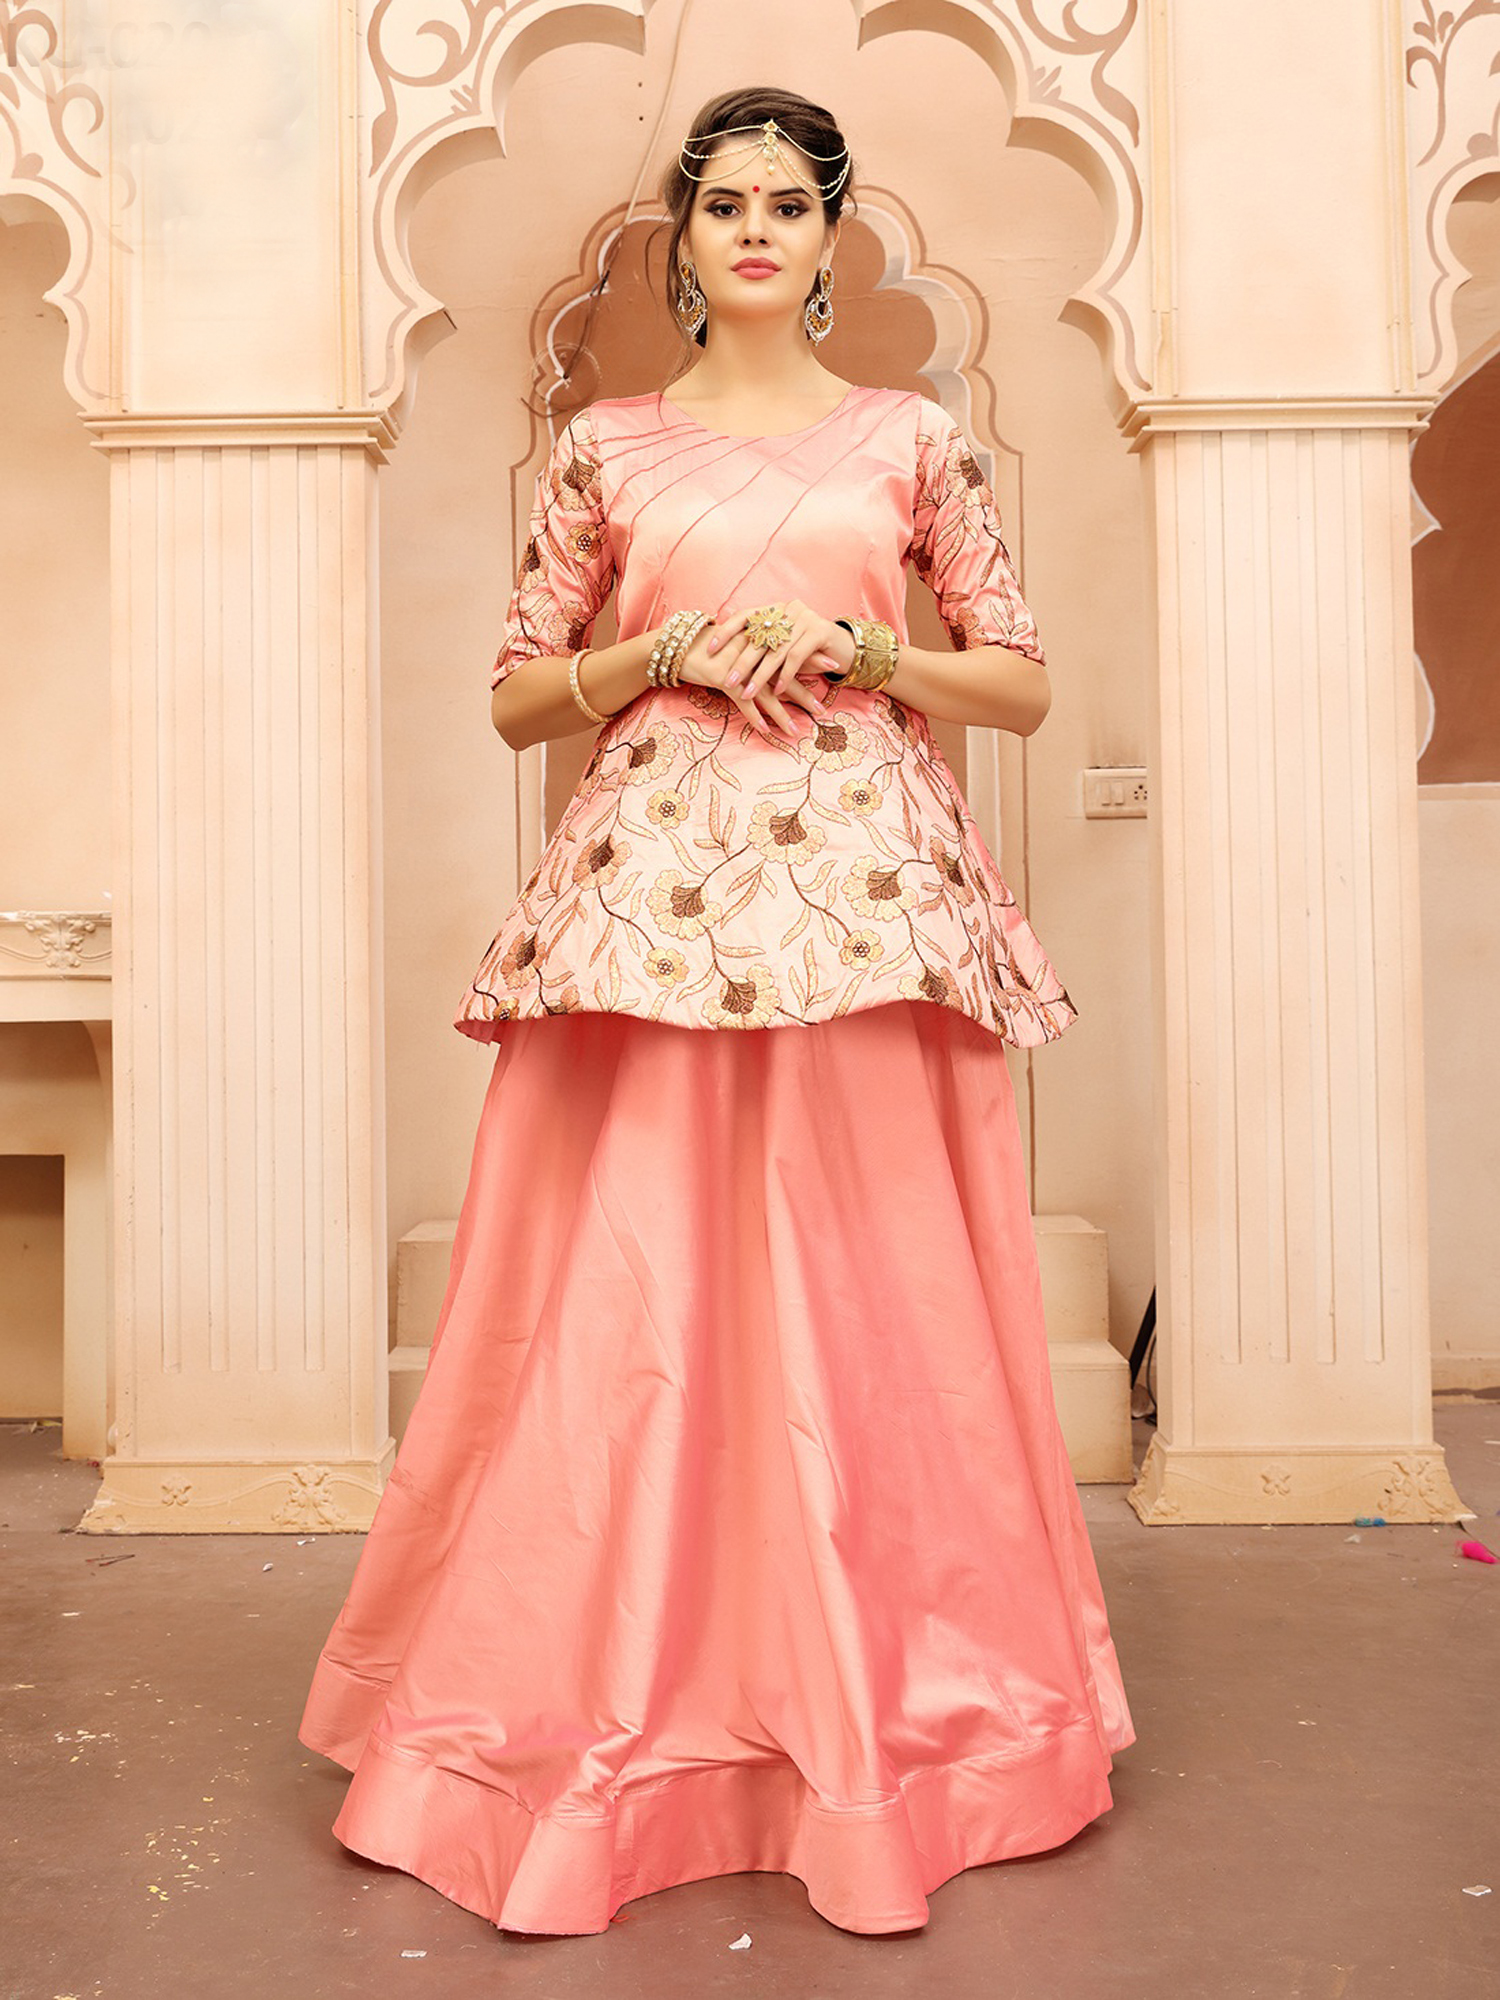 Readymade Gown Manufacturer In Suratreadymade Gown Suppliertrader